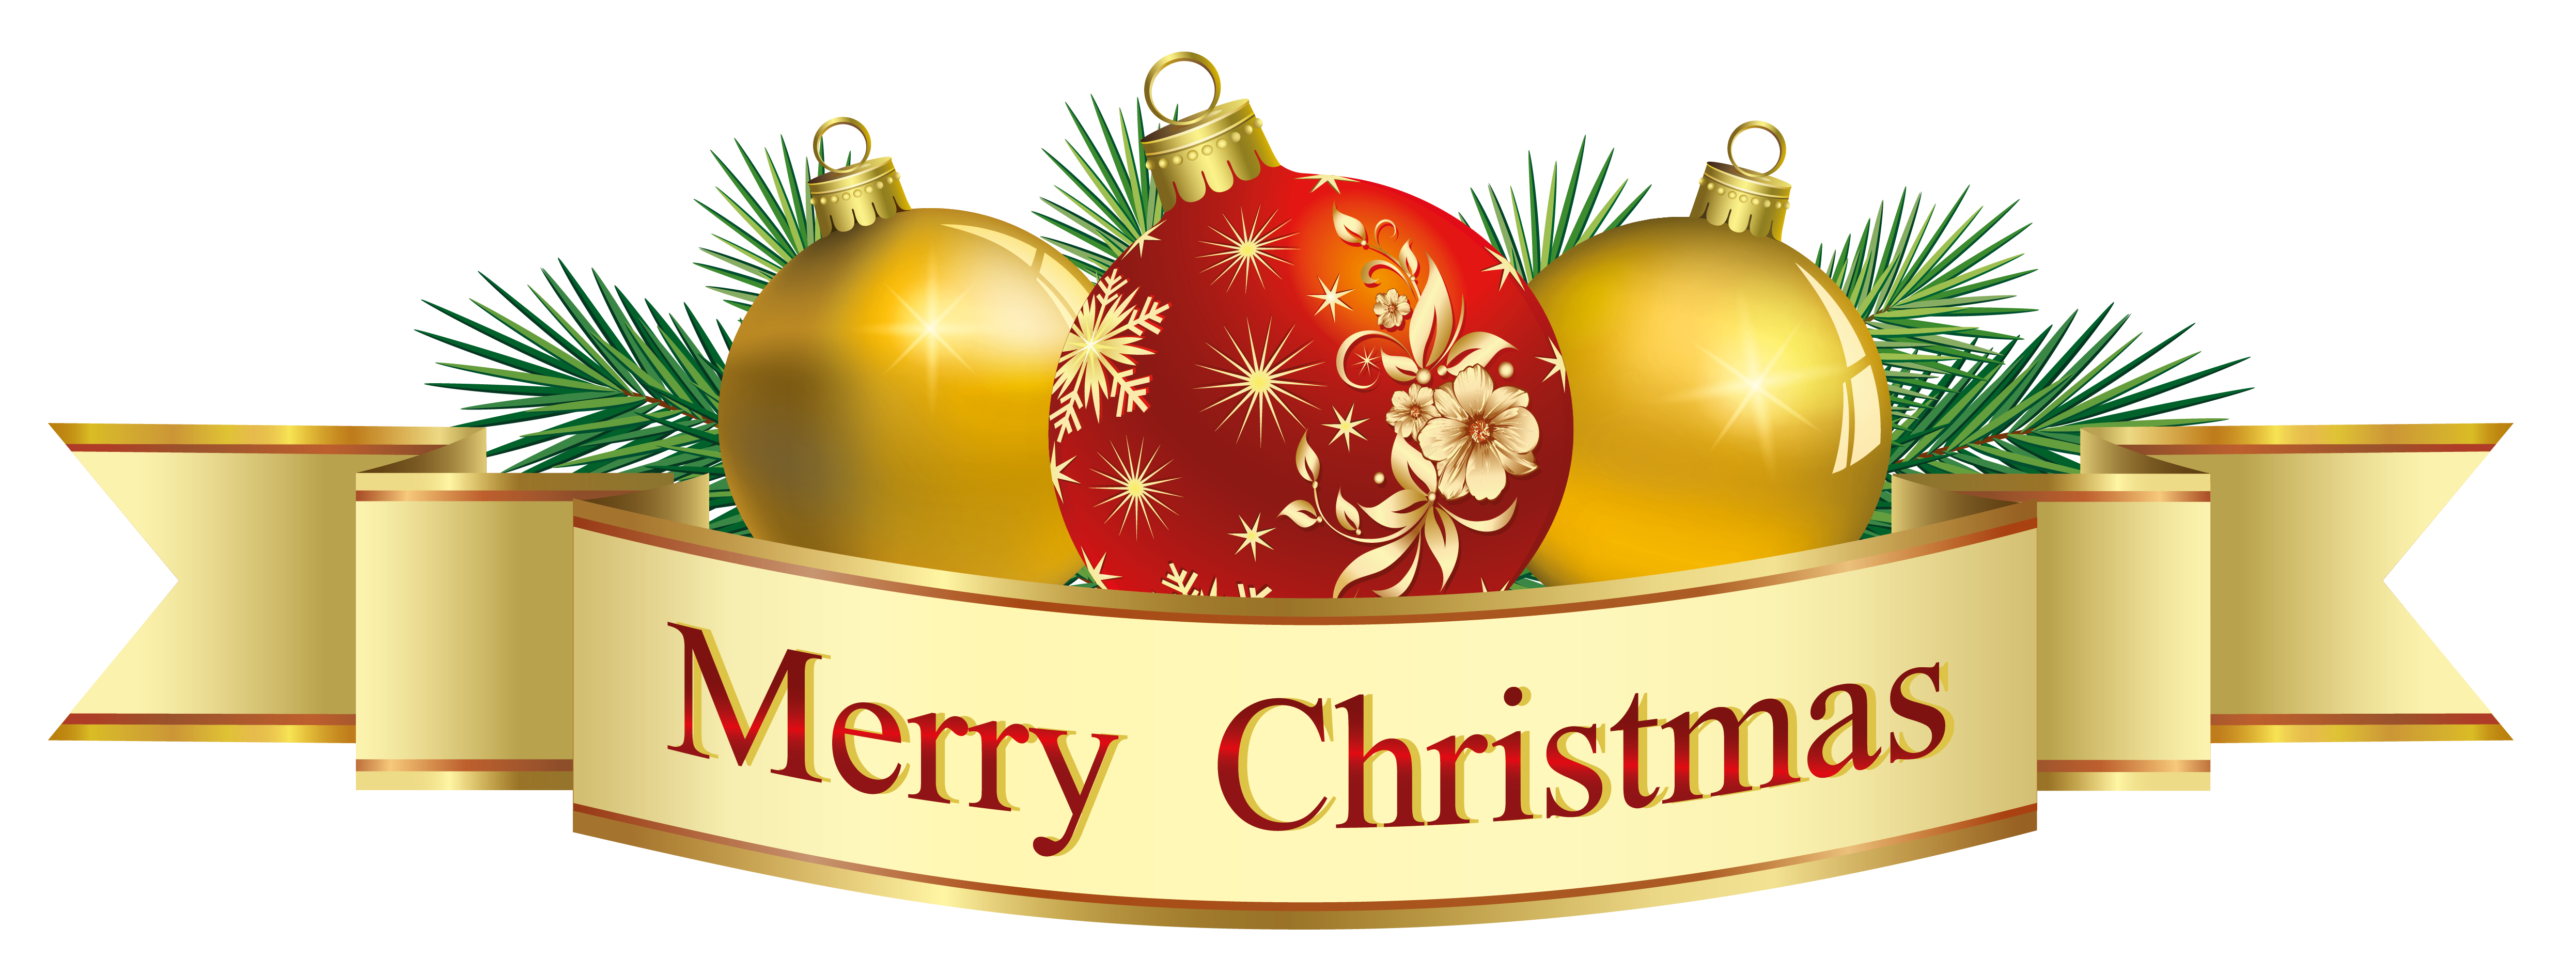 Merry Christmas Clip Art Images | Xmas | Pinterest | Merry ...